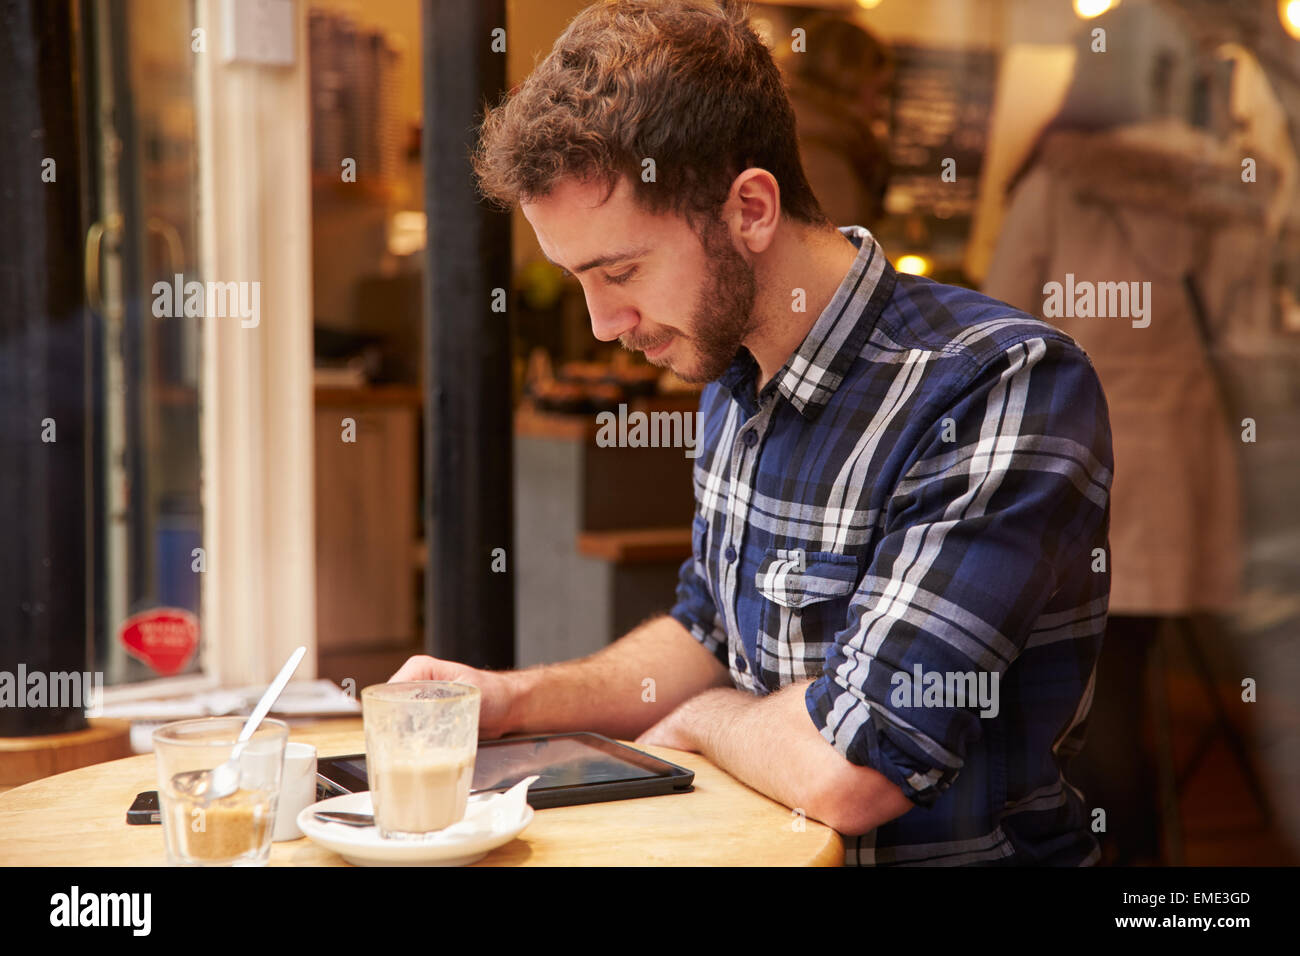 Man Viewed Through Window Of Caf' Using Digital Tablet - Stock Image